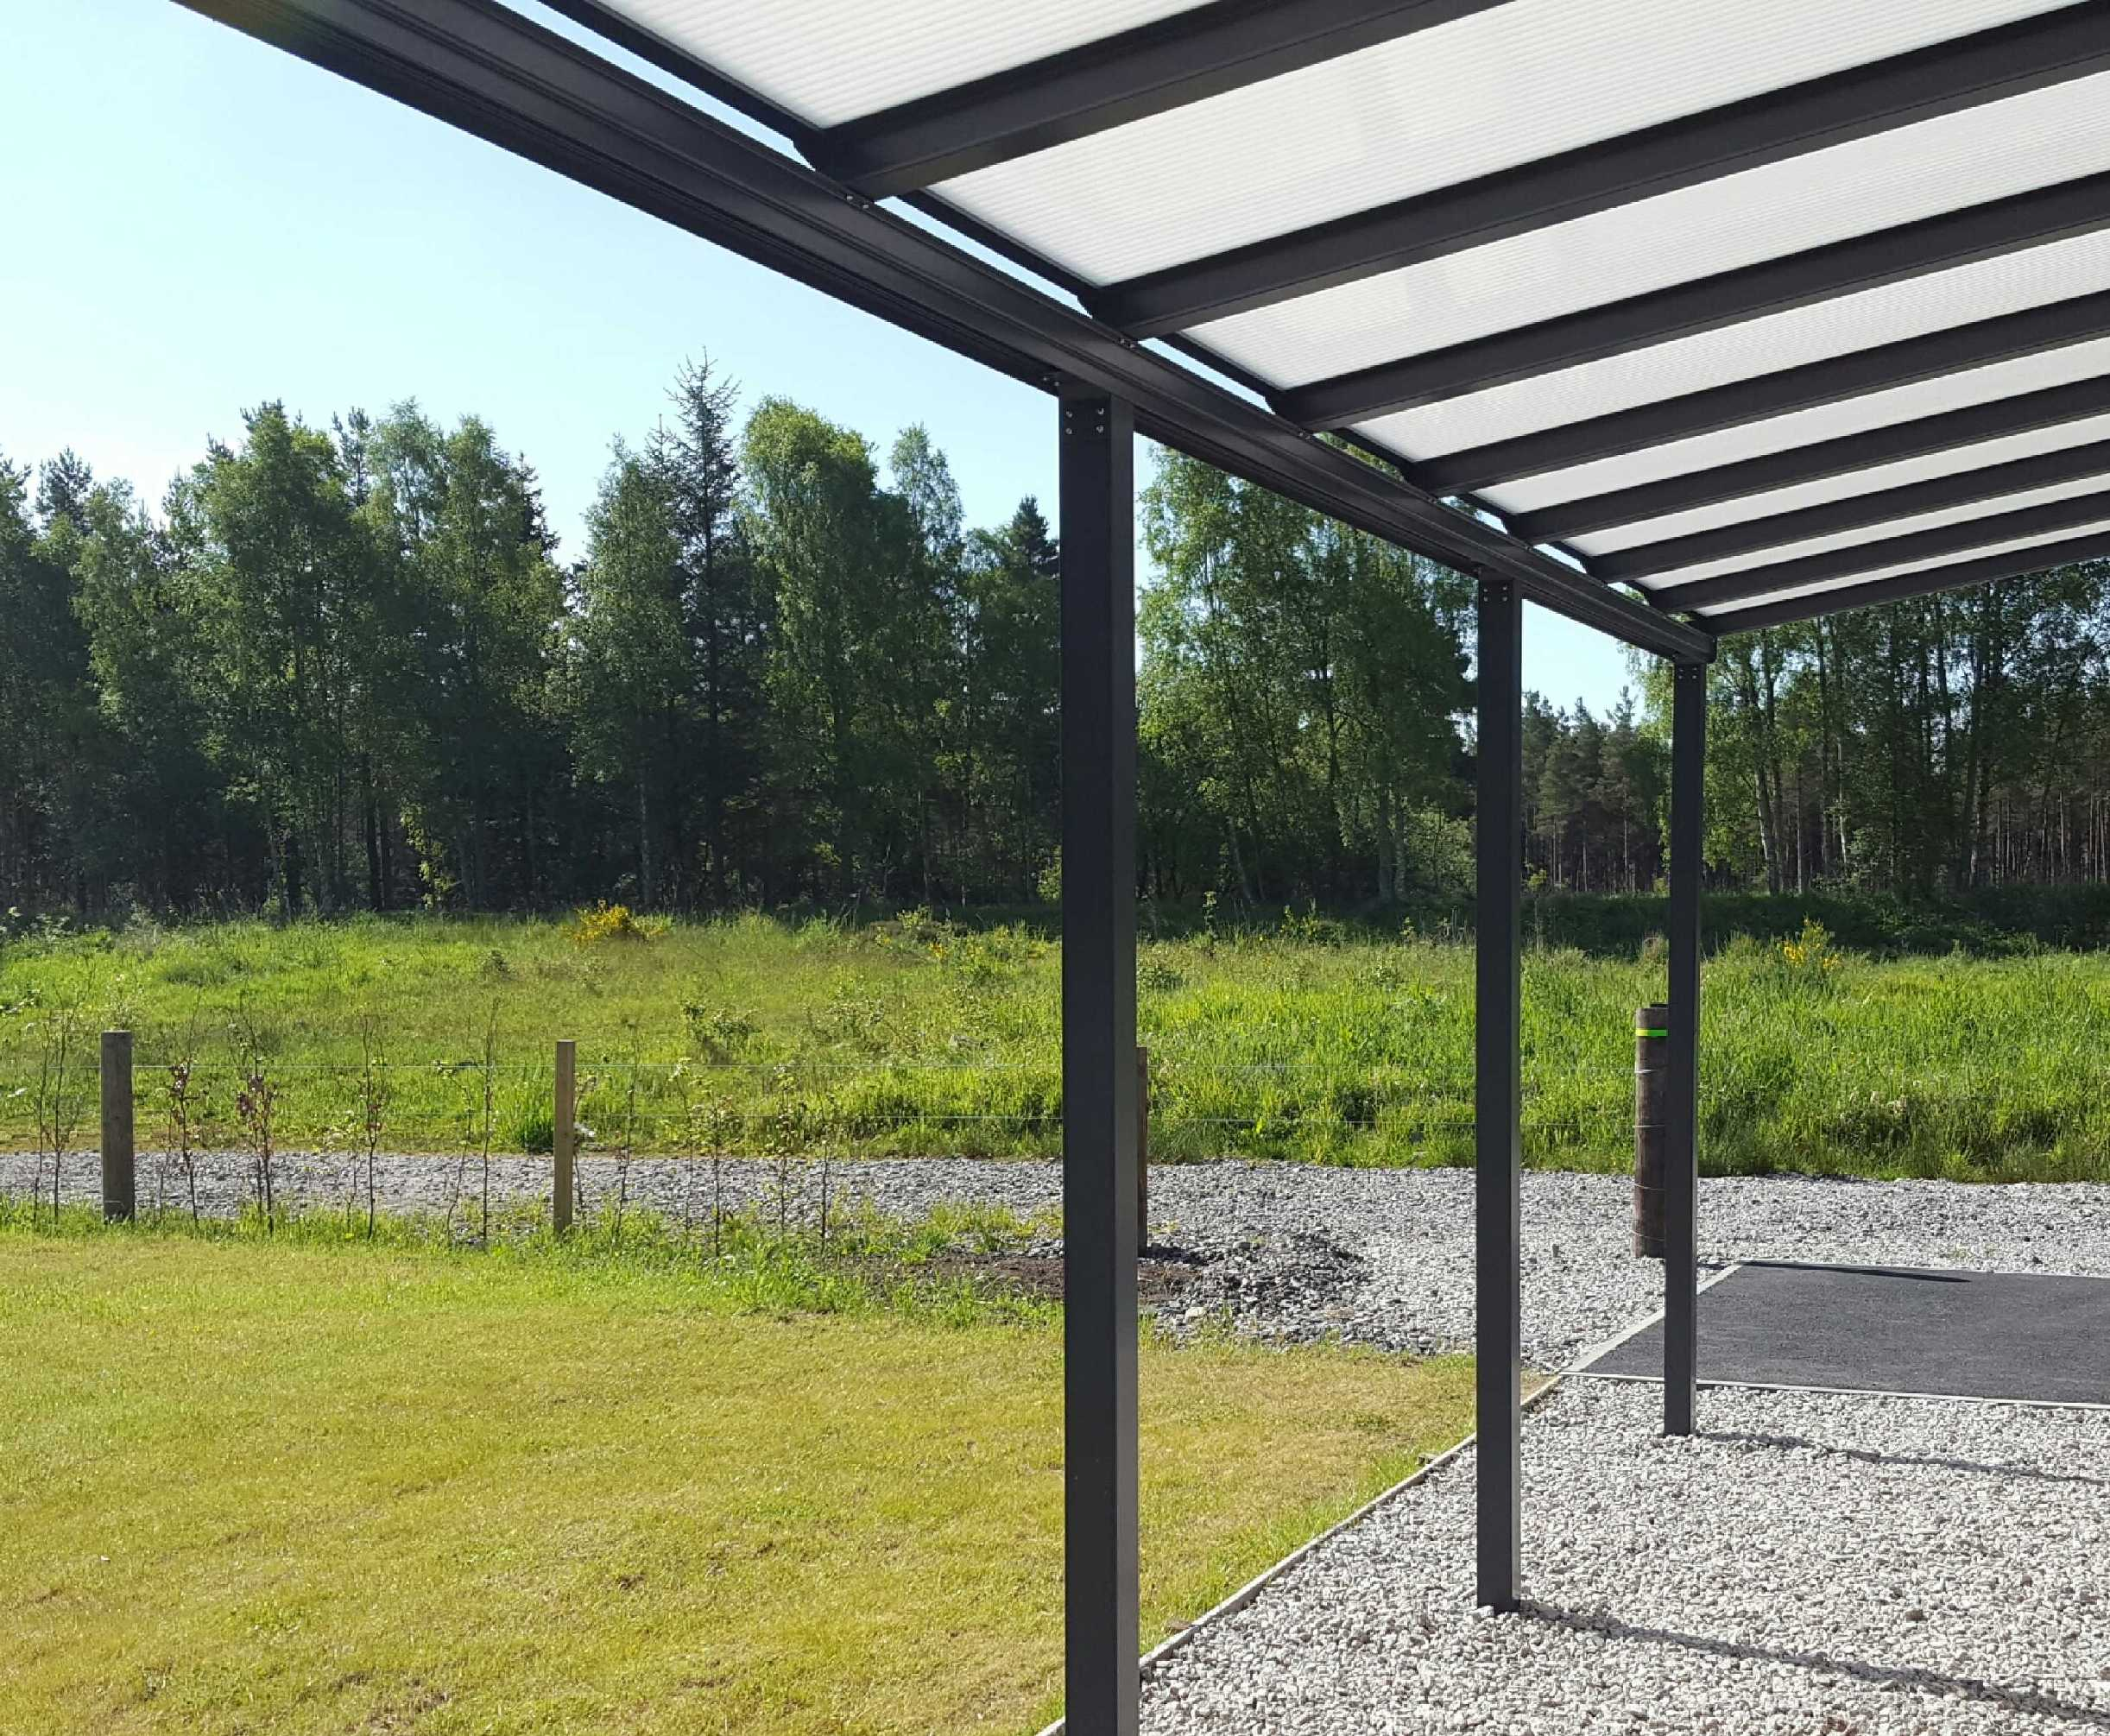 Omega Smart Lean-To Canopy, Anthracite Grey, 16mm Polycarbonate Glazing - 7.0m (W) x 4.0m (P), (4) Supporting Posts